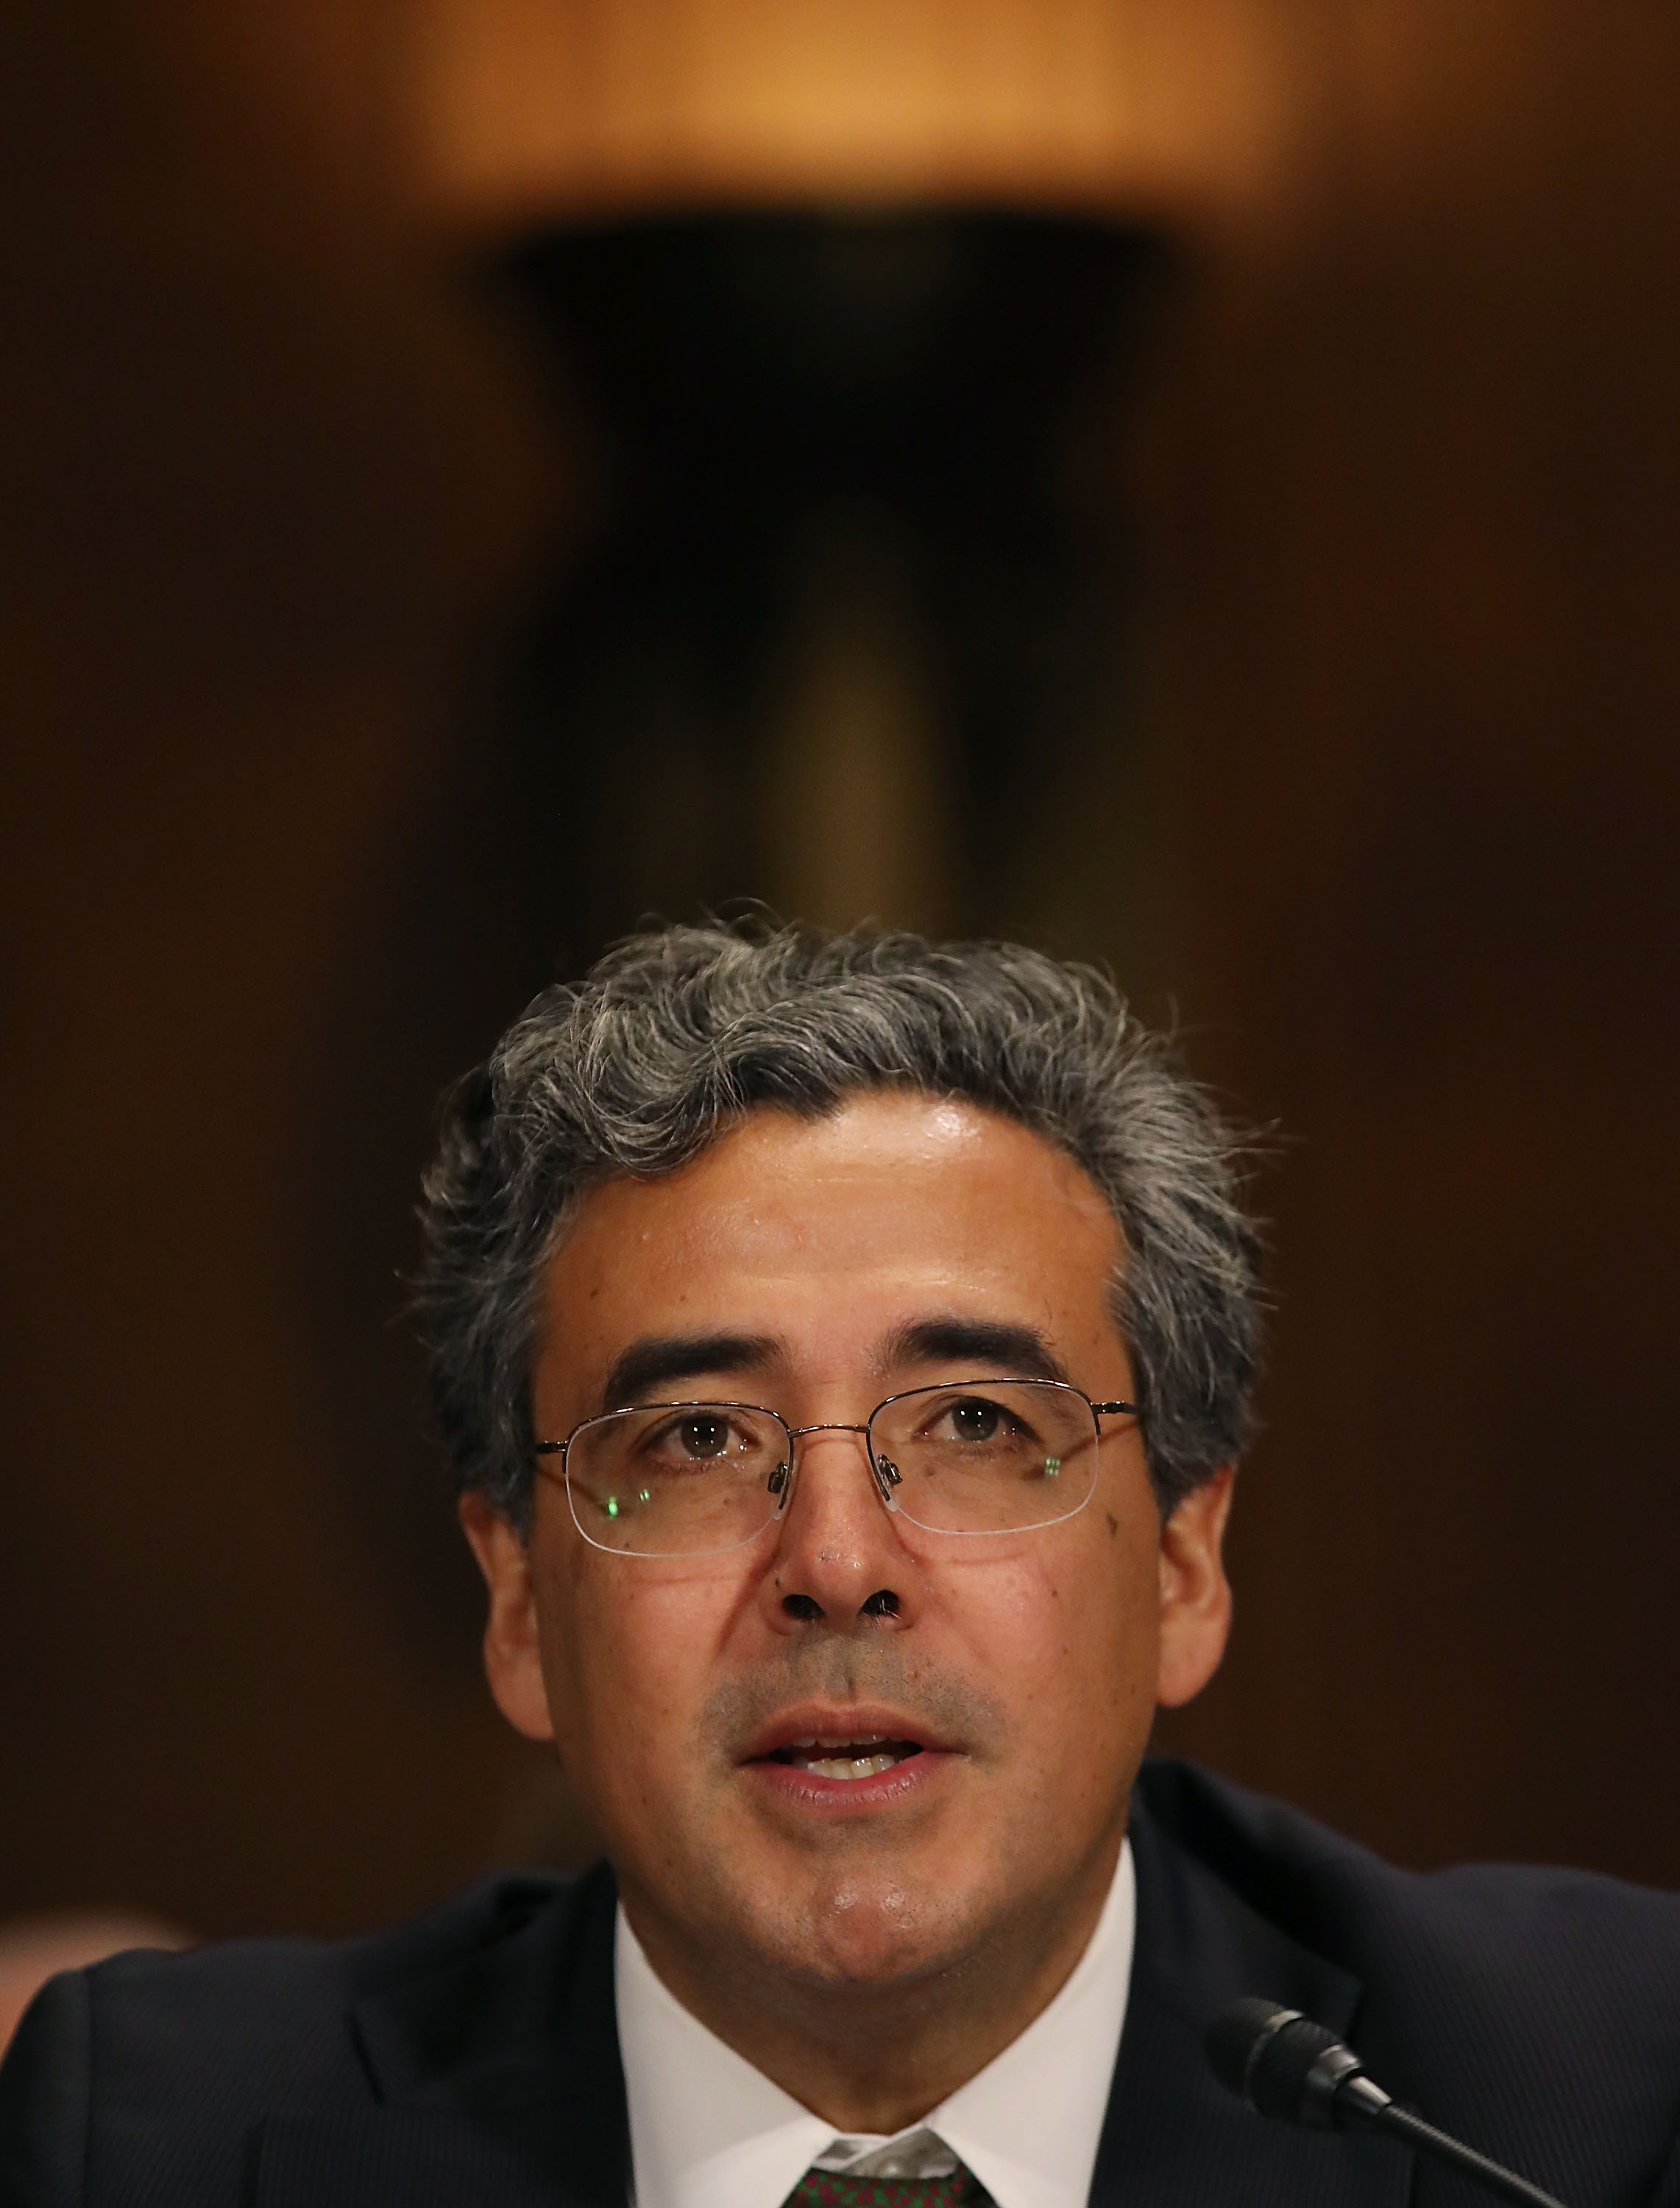 Noel Francisco during his confirmation hearing as solicitor general in May 2017.